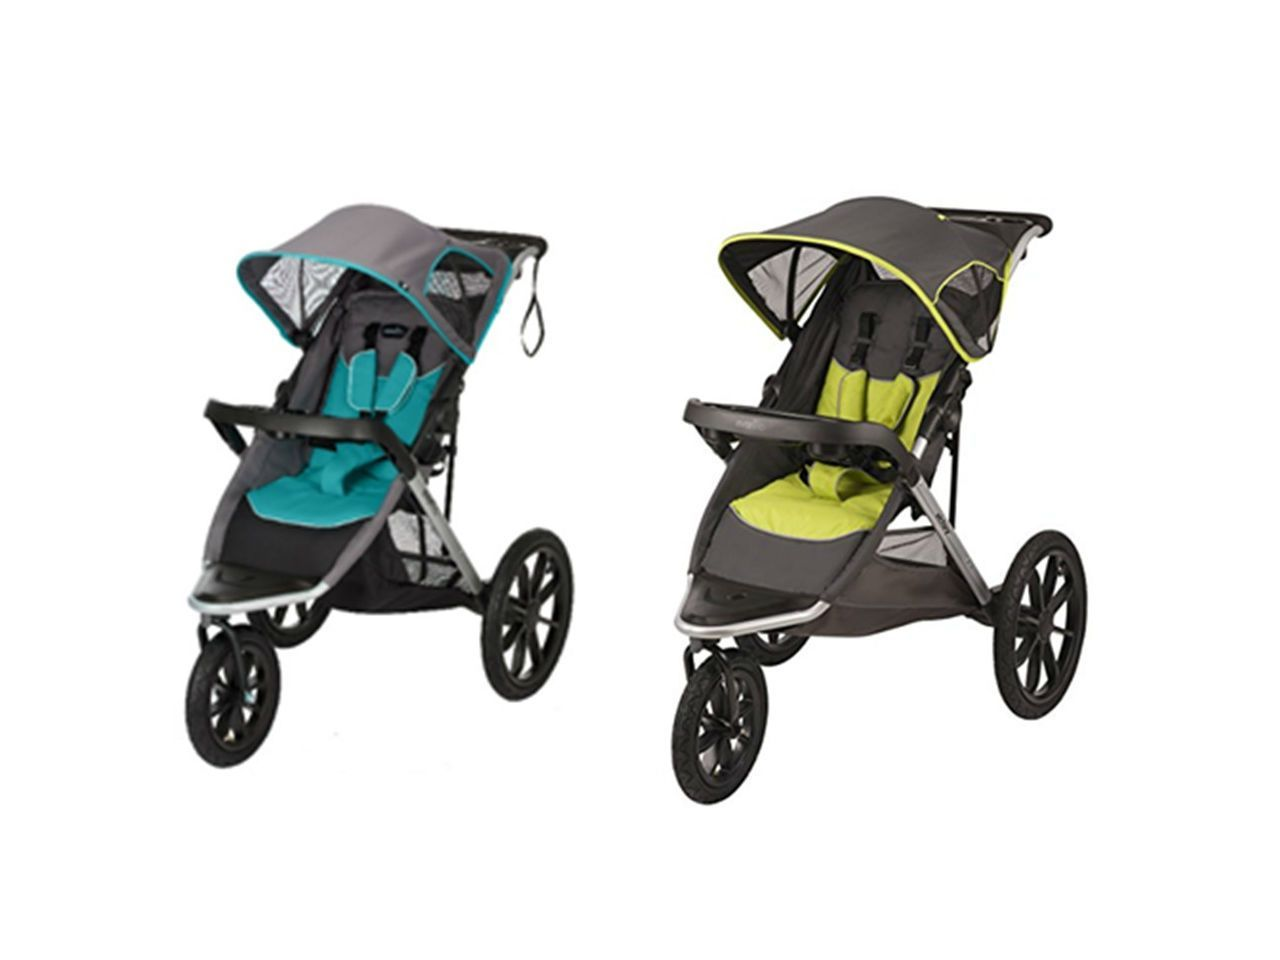 Evenflo has recalled their Victory jogging stroller after